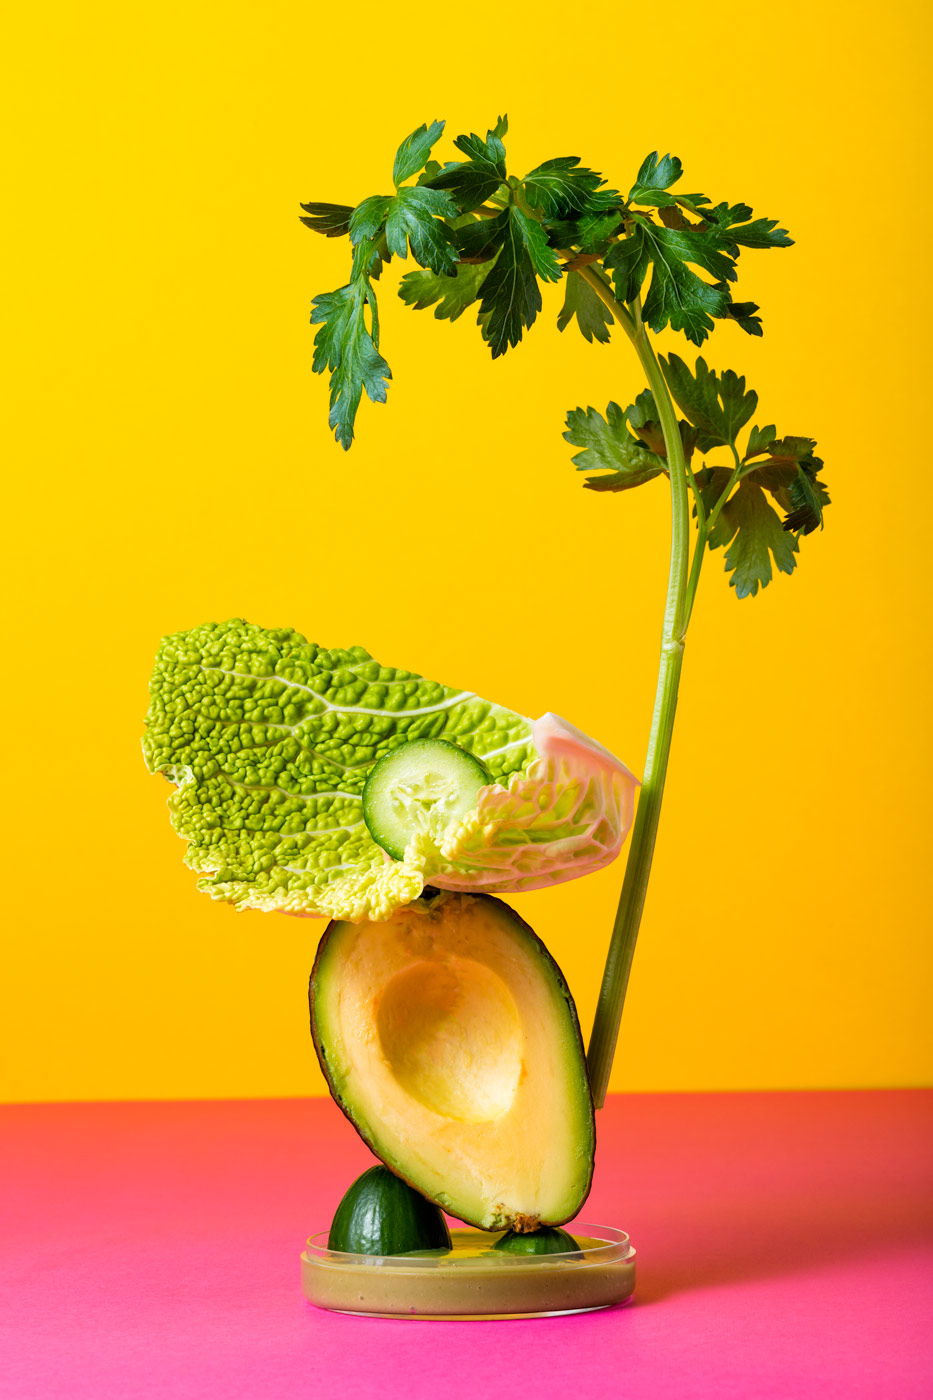 Smoothie sculpture, avocado, cucumber, cabage and parsley